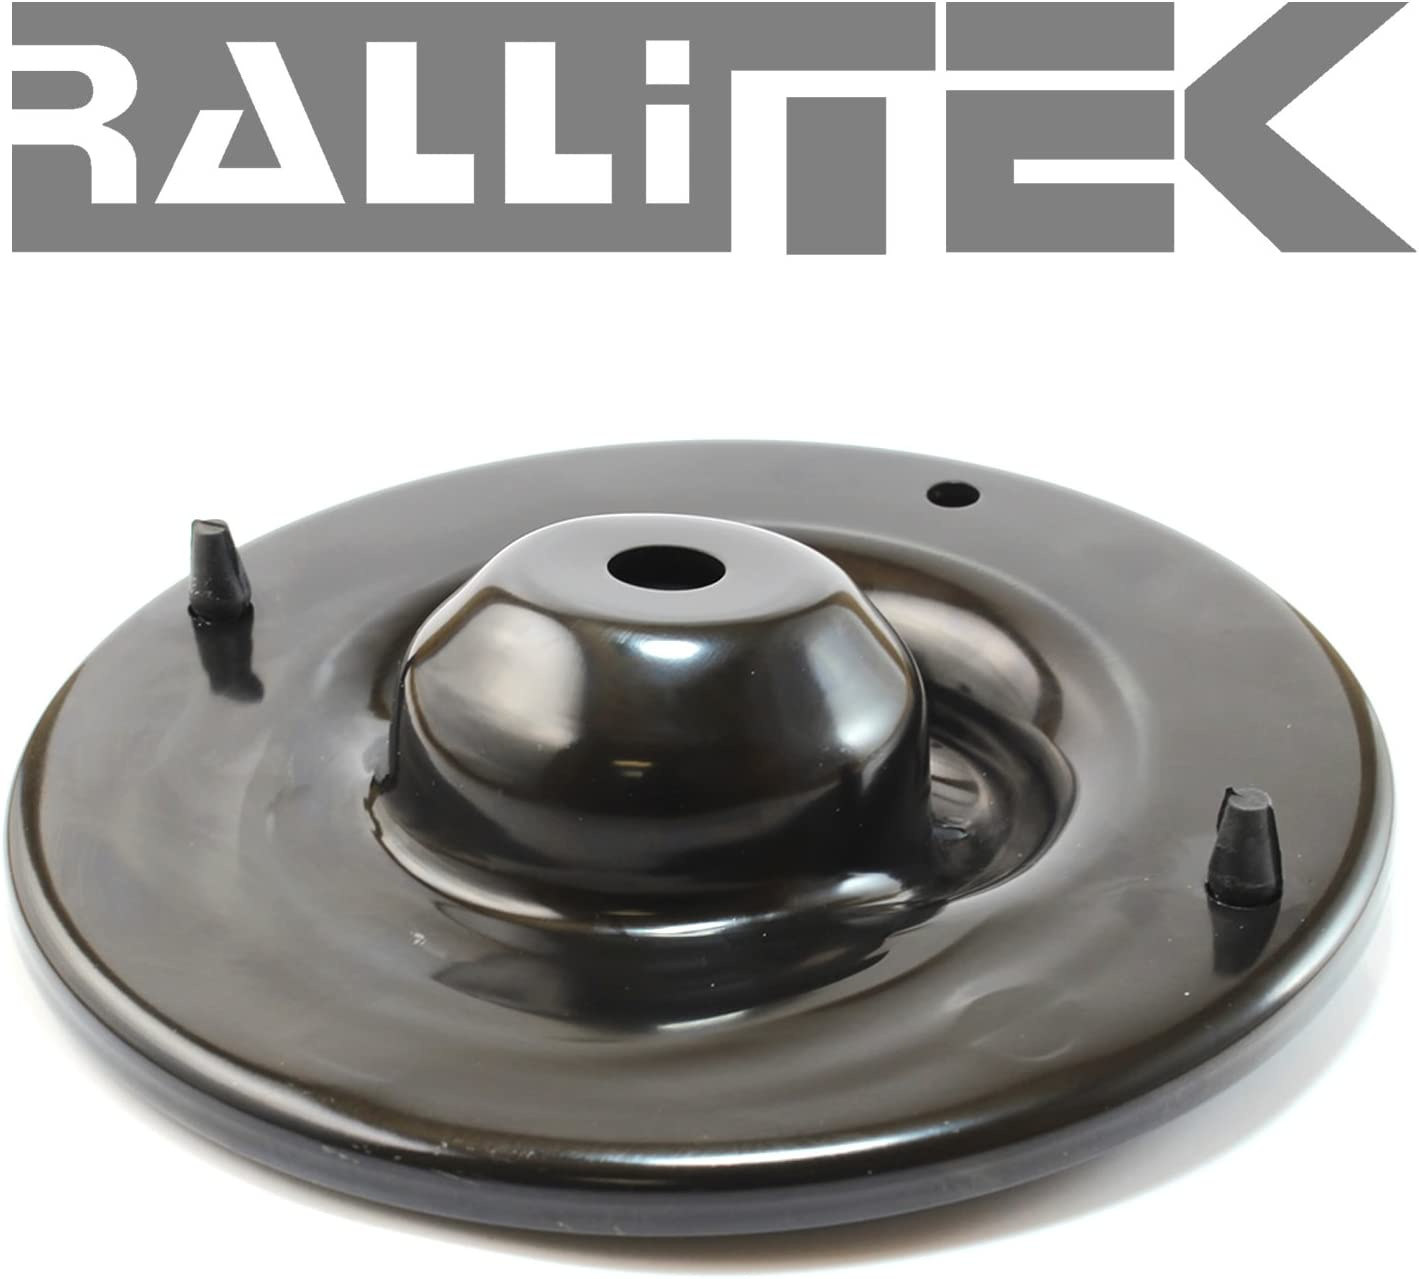 Outback 2000-2004 RalliTEK 1 Front Raised Springs w//Perch